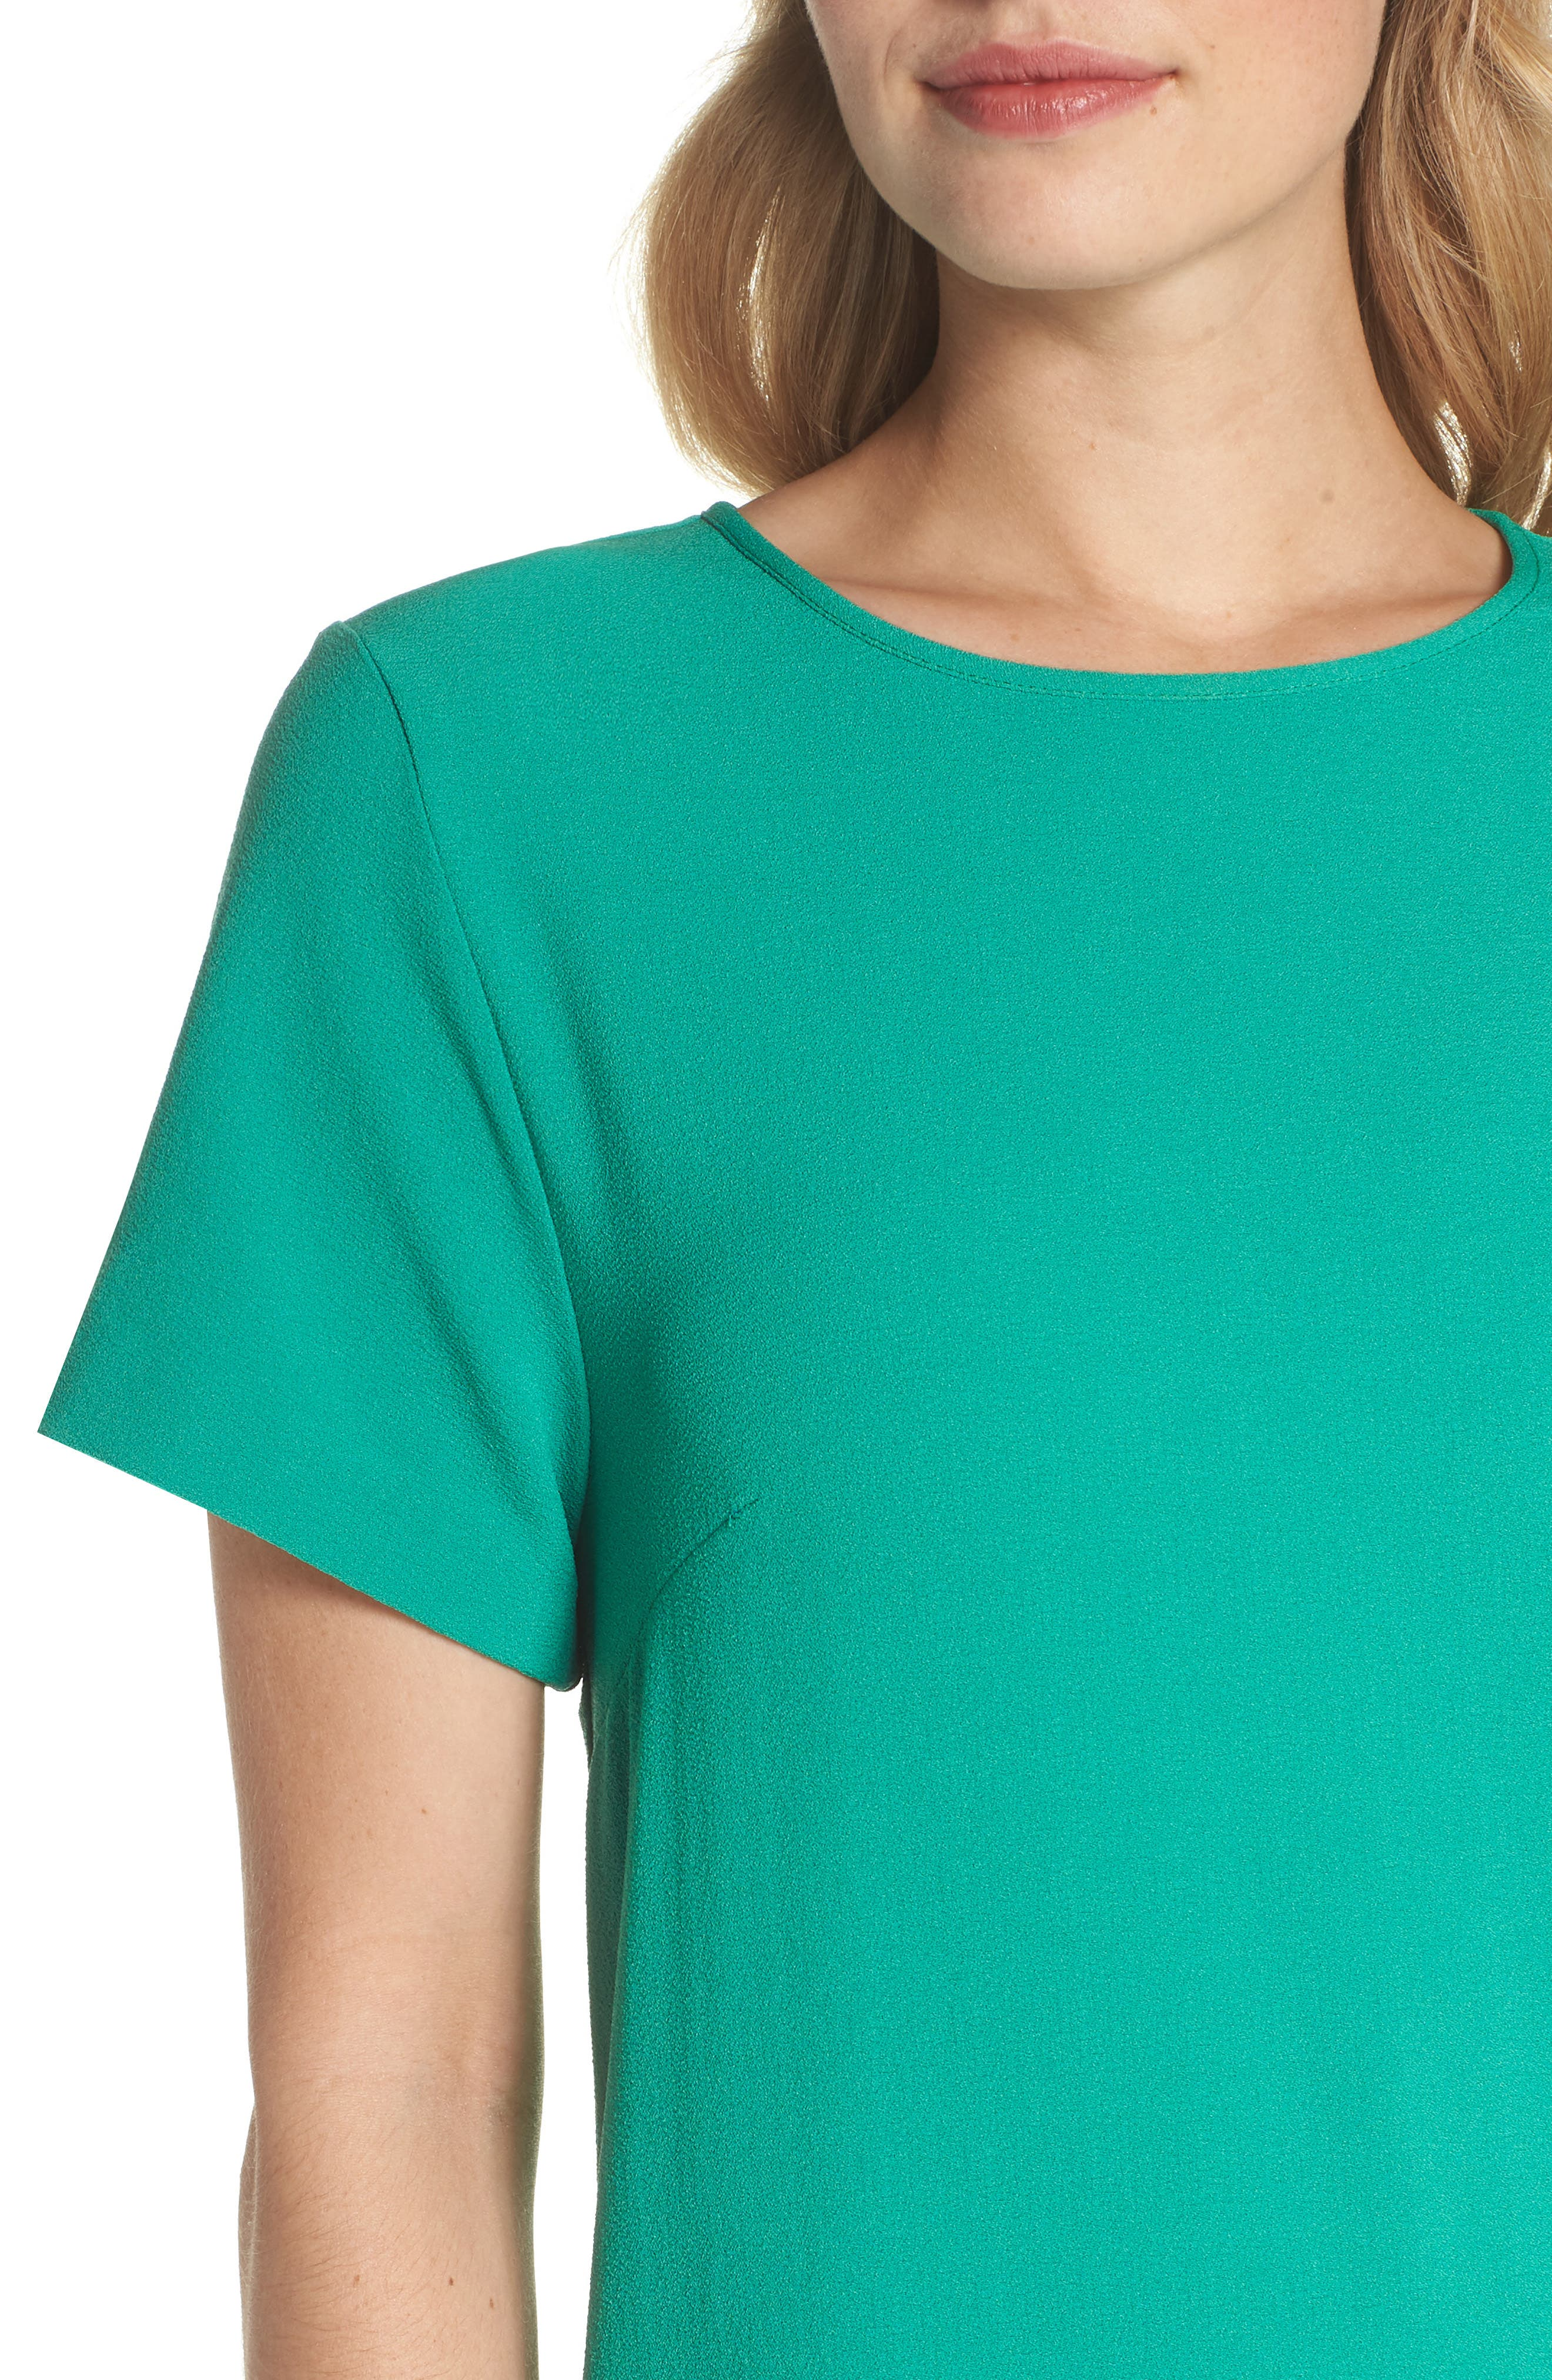 Devery Crepe Shift Dress,                             Alternate thumbnail 4, color,                             Emerald Green